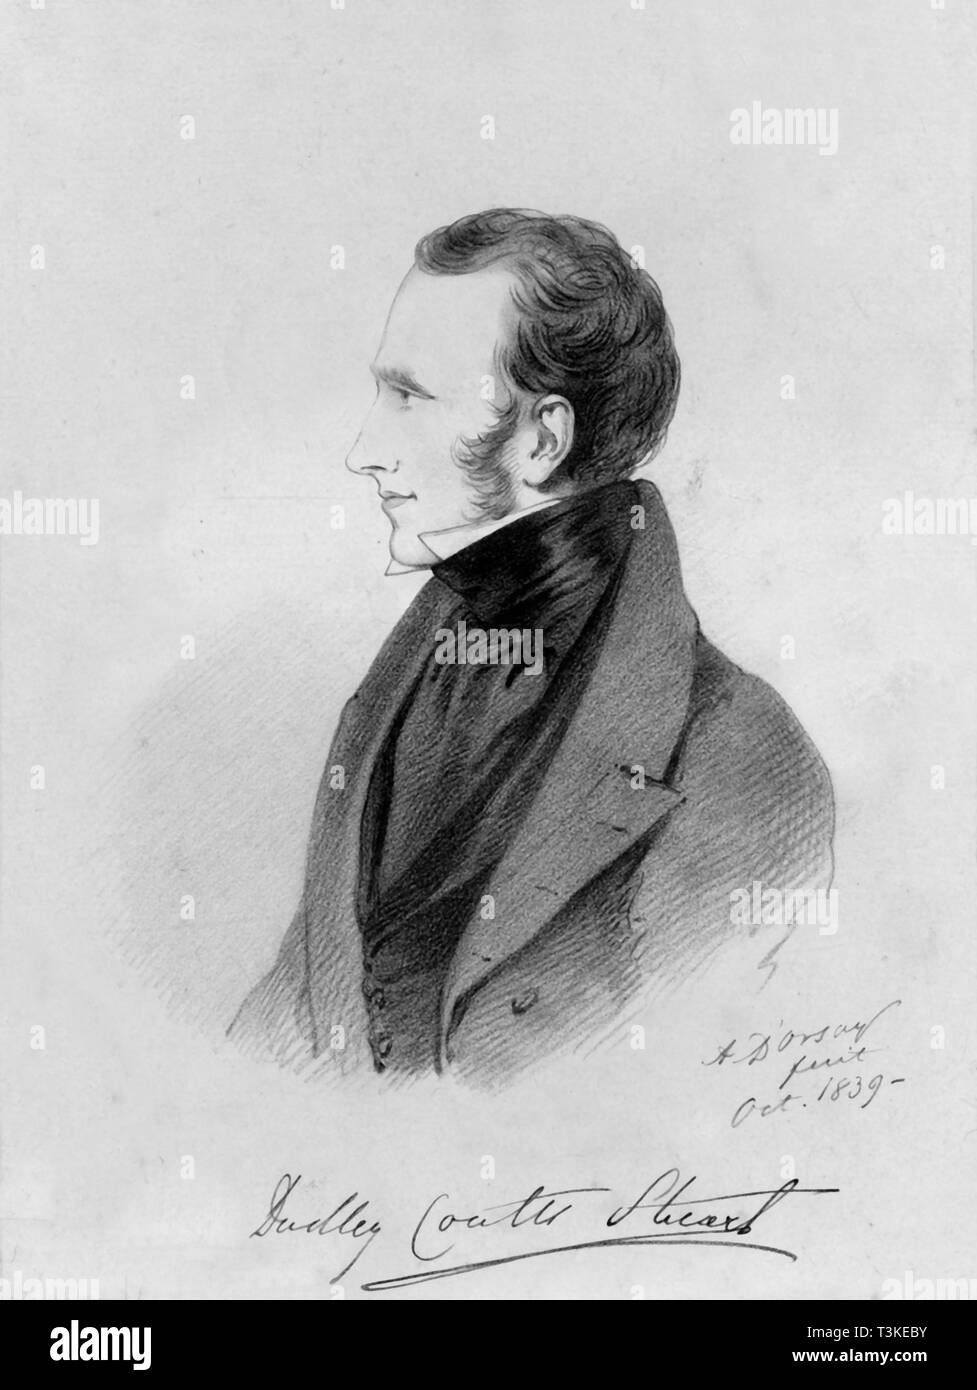 """'Dudley Coutts Stuart', 1839. Portrait of Lord Dudley Coutts Stuart (1803-1854), British politician who married Princess Christine Bonaparte, niece of Napoleon Bonaparte. From """"Portraits by Count D'Orsay"""", an album assembled by Lady Georgiana Codrington. [1850s] - Stock Image"""